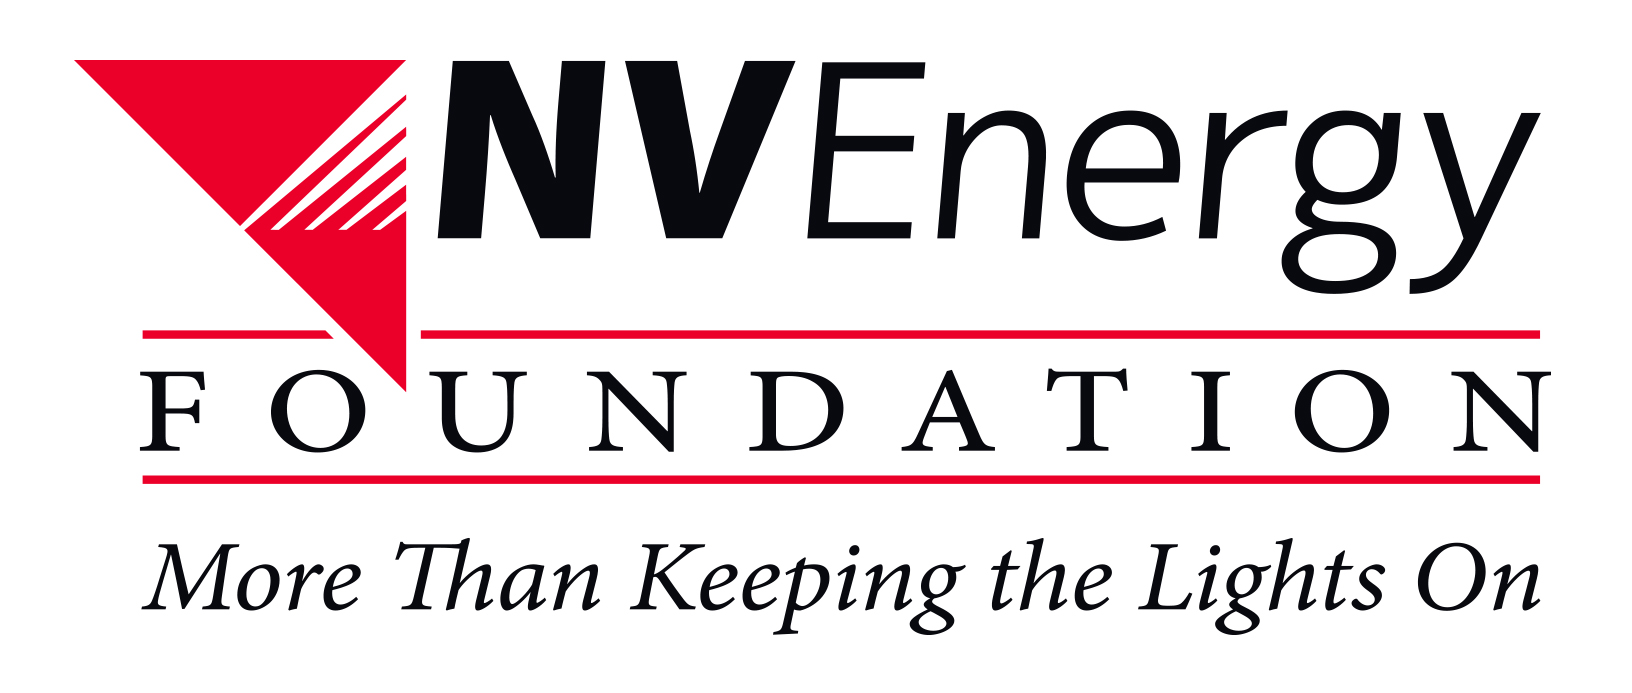 NVEnergy Foundation Logo_2014-04_FINAL.jpg